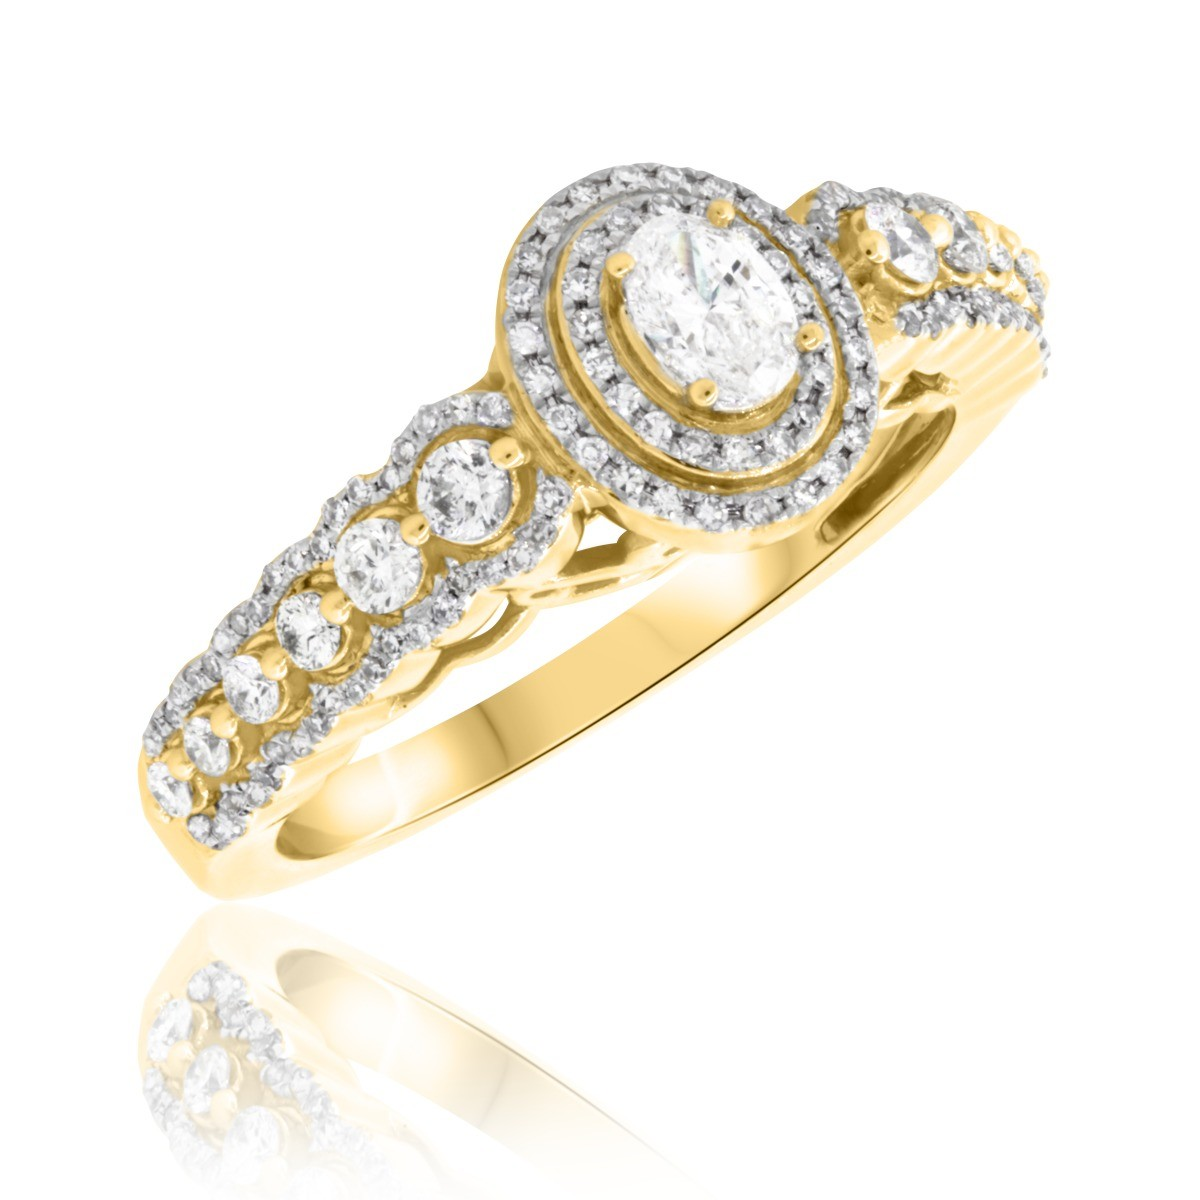 7/8 CT. T.W. Diamond Engagement Ring 14K Yellow Gold